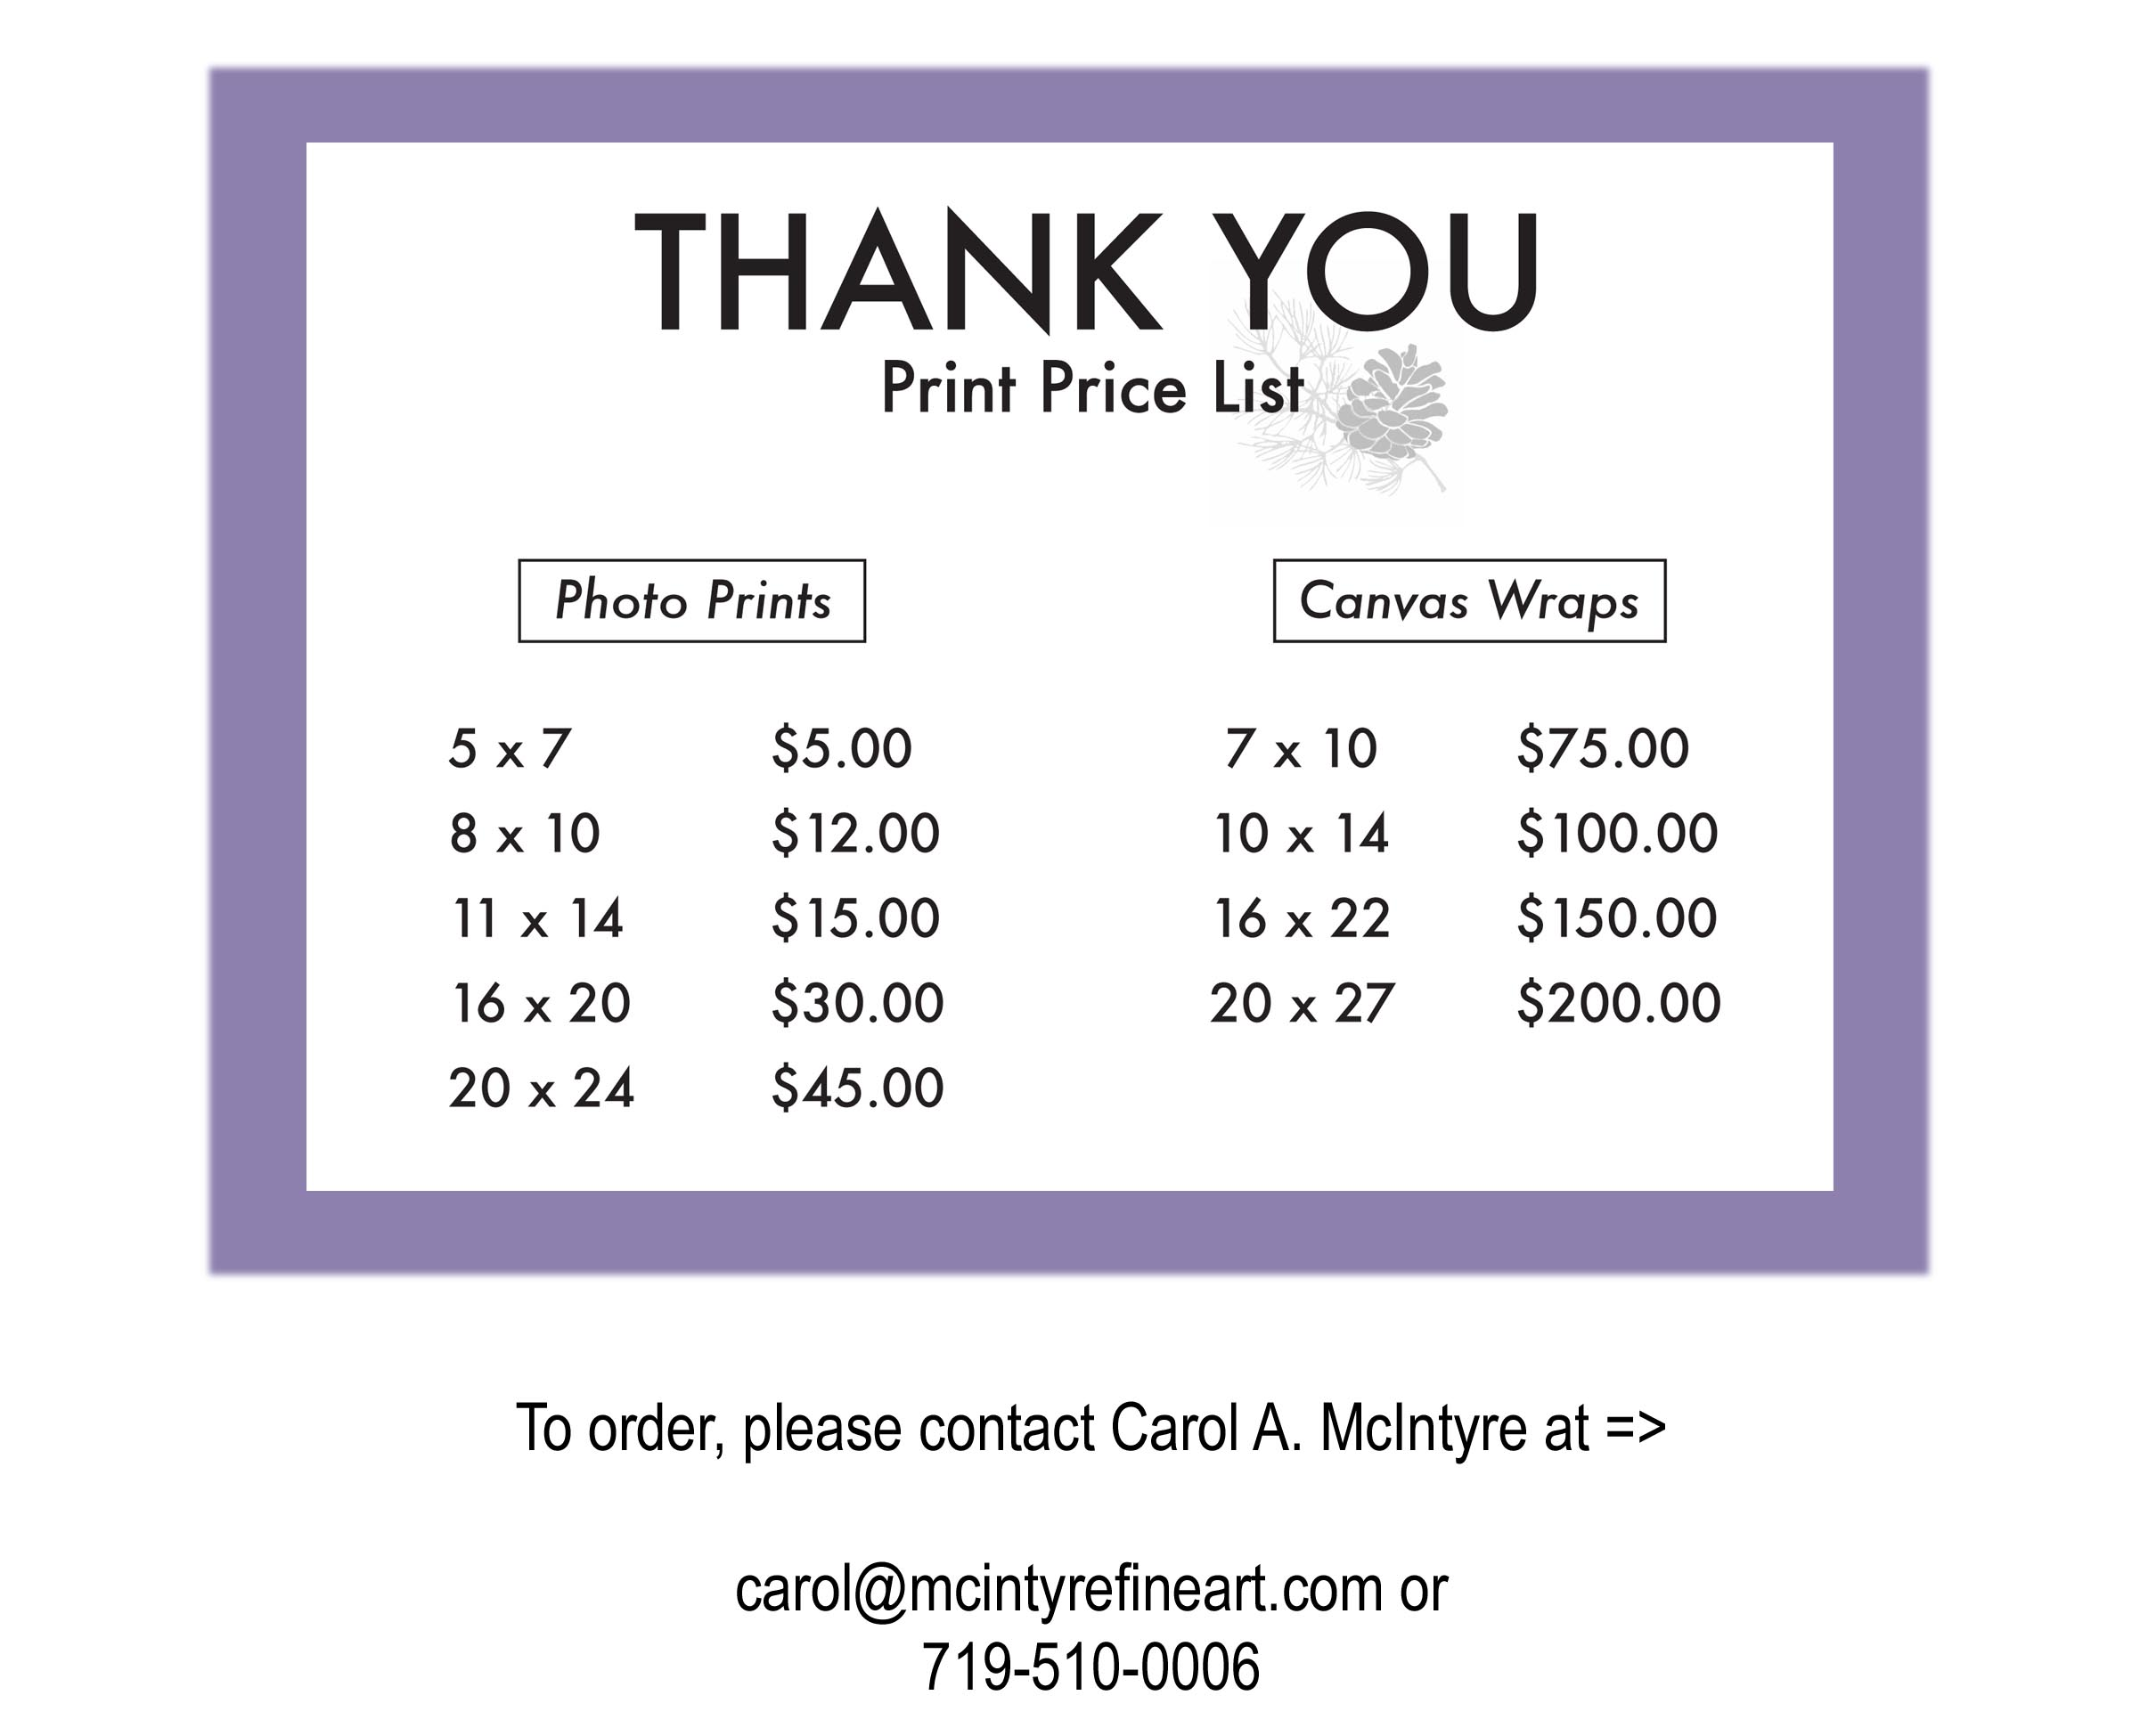 bf thankyou print price list 2 celebrating color